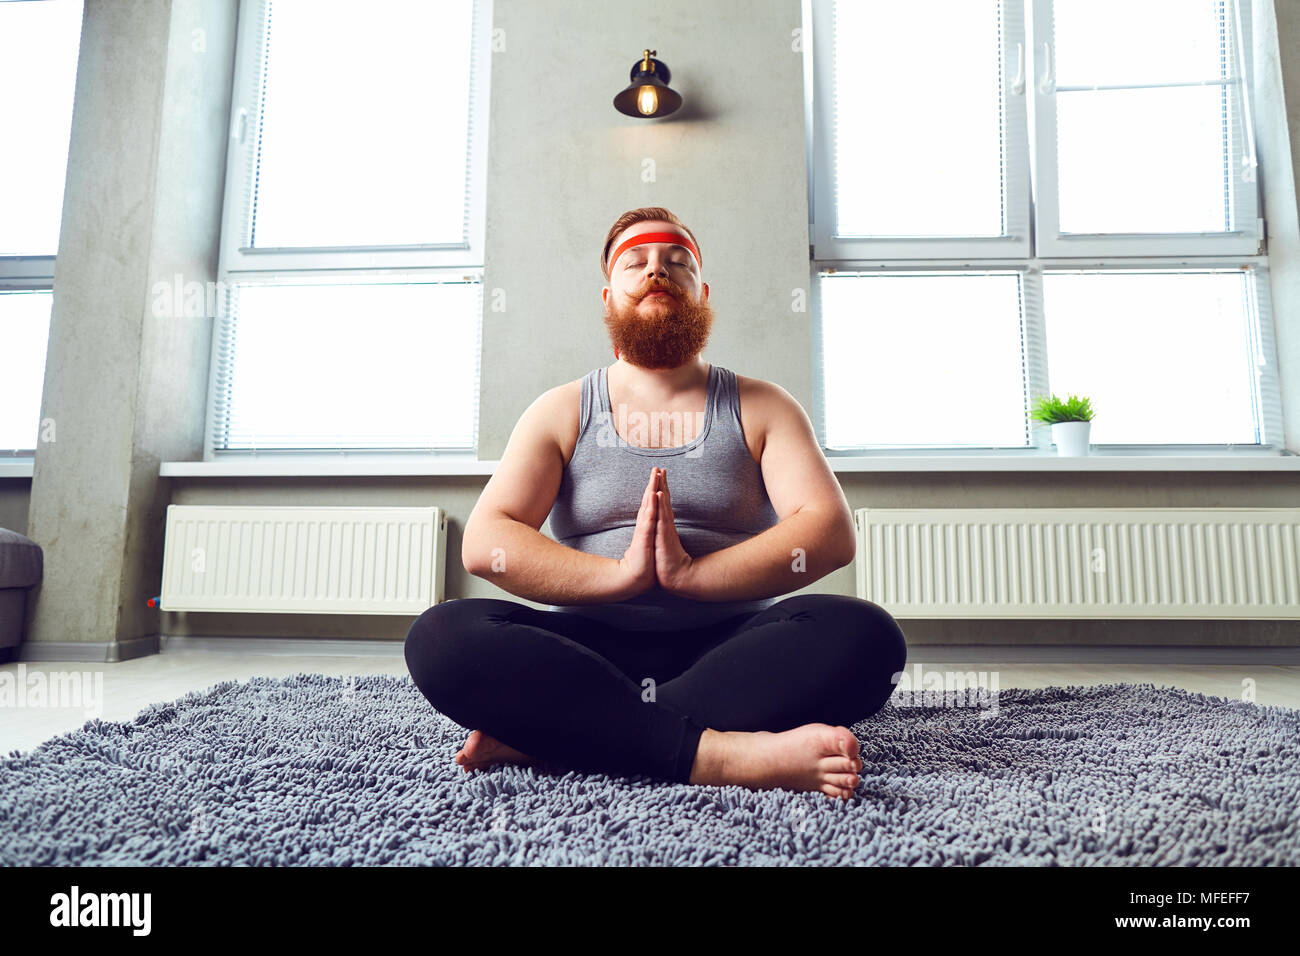 A funny fat bearded man in sports clothes does yoga in the room. - Stock Image